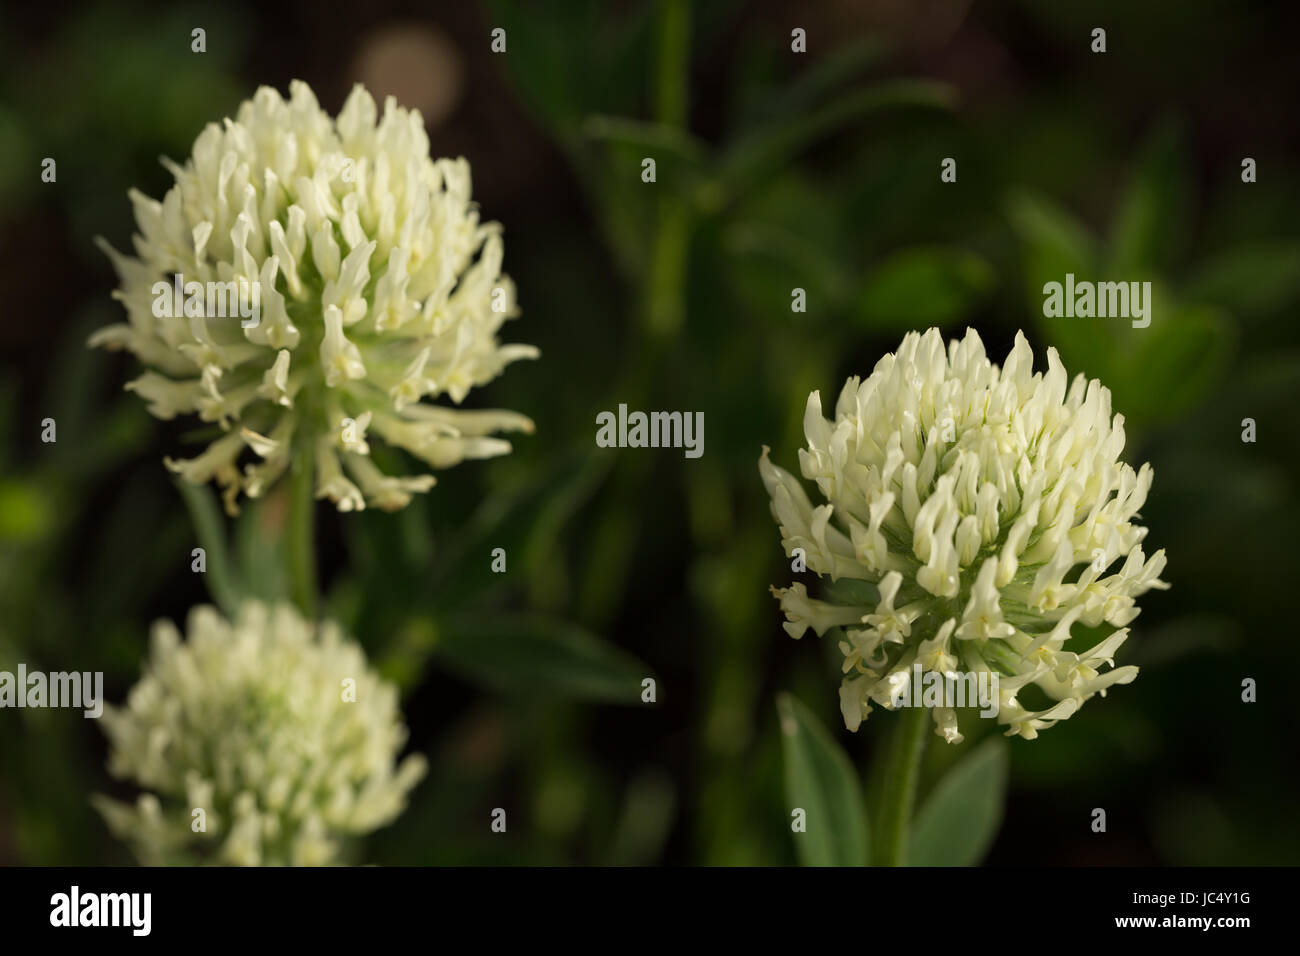 Flowering Trifolium ochroleucon, a type of giant clover. Flowers in early summer and is loved by pollinators. - Stock Image